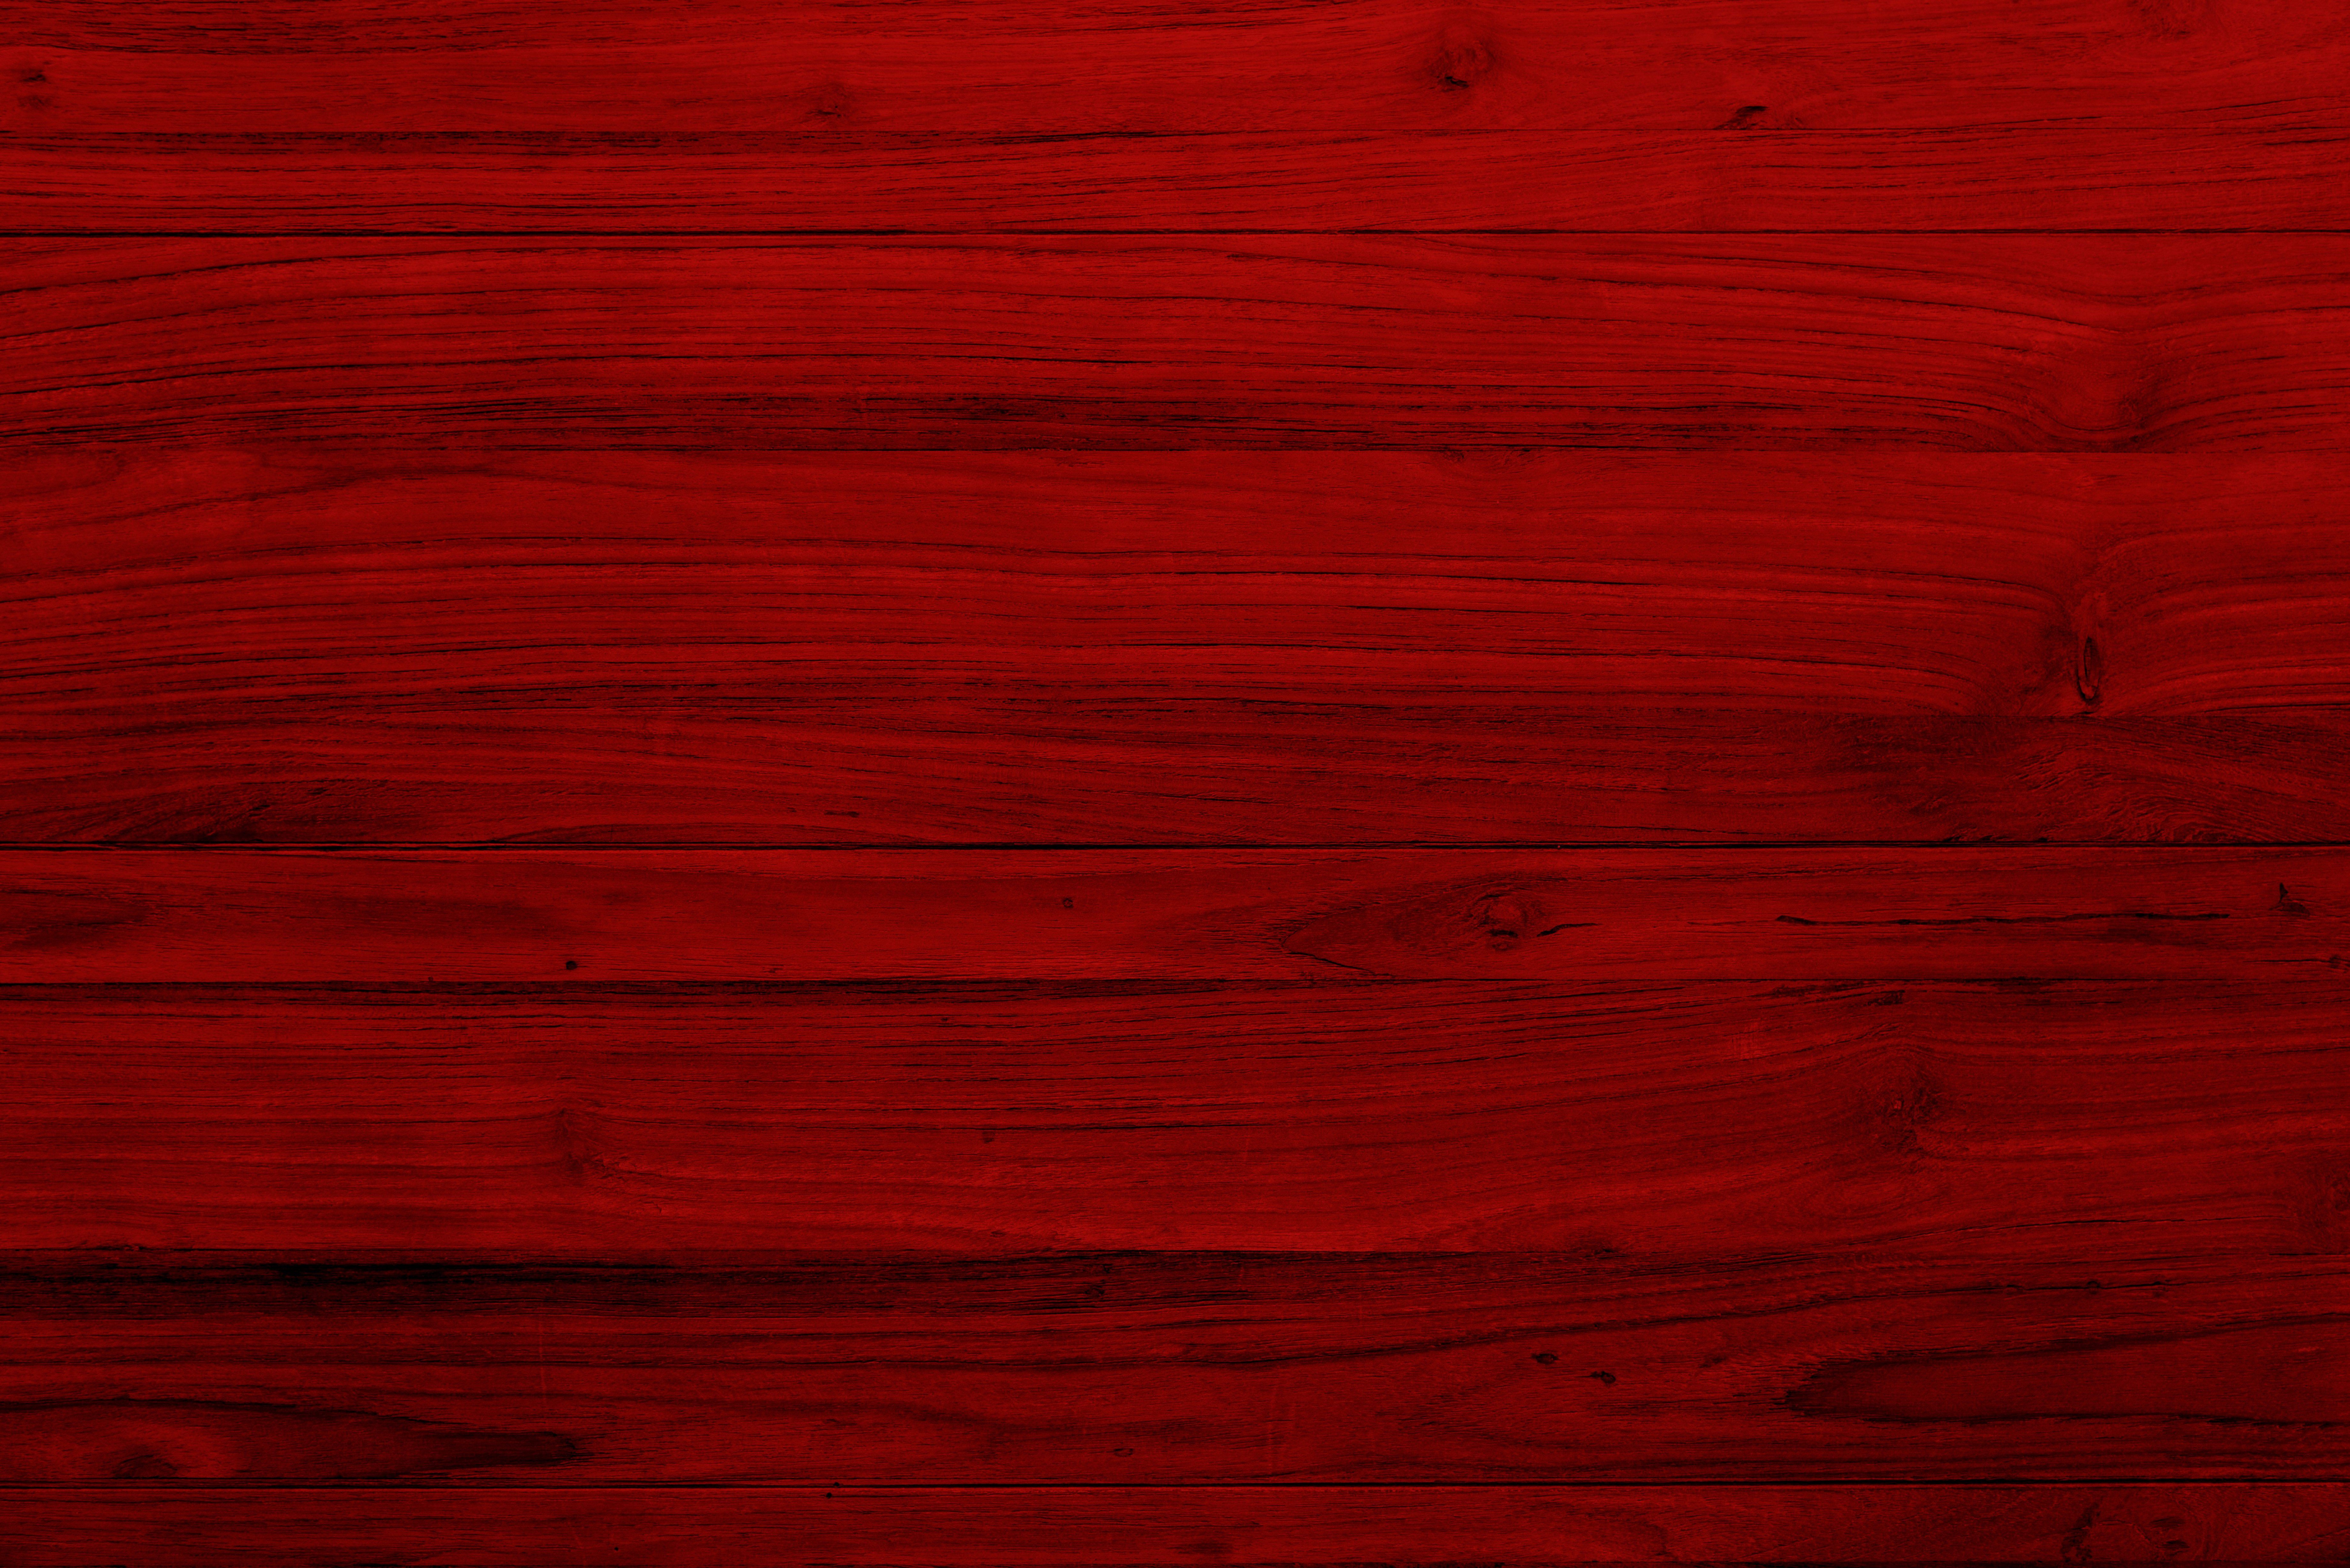 Red texture background. wooden texture board. Wooden Background. Plank